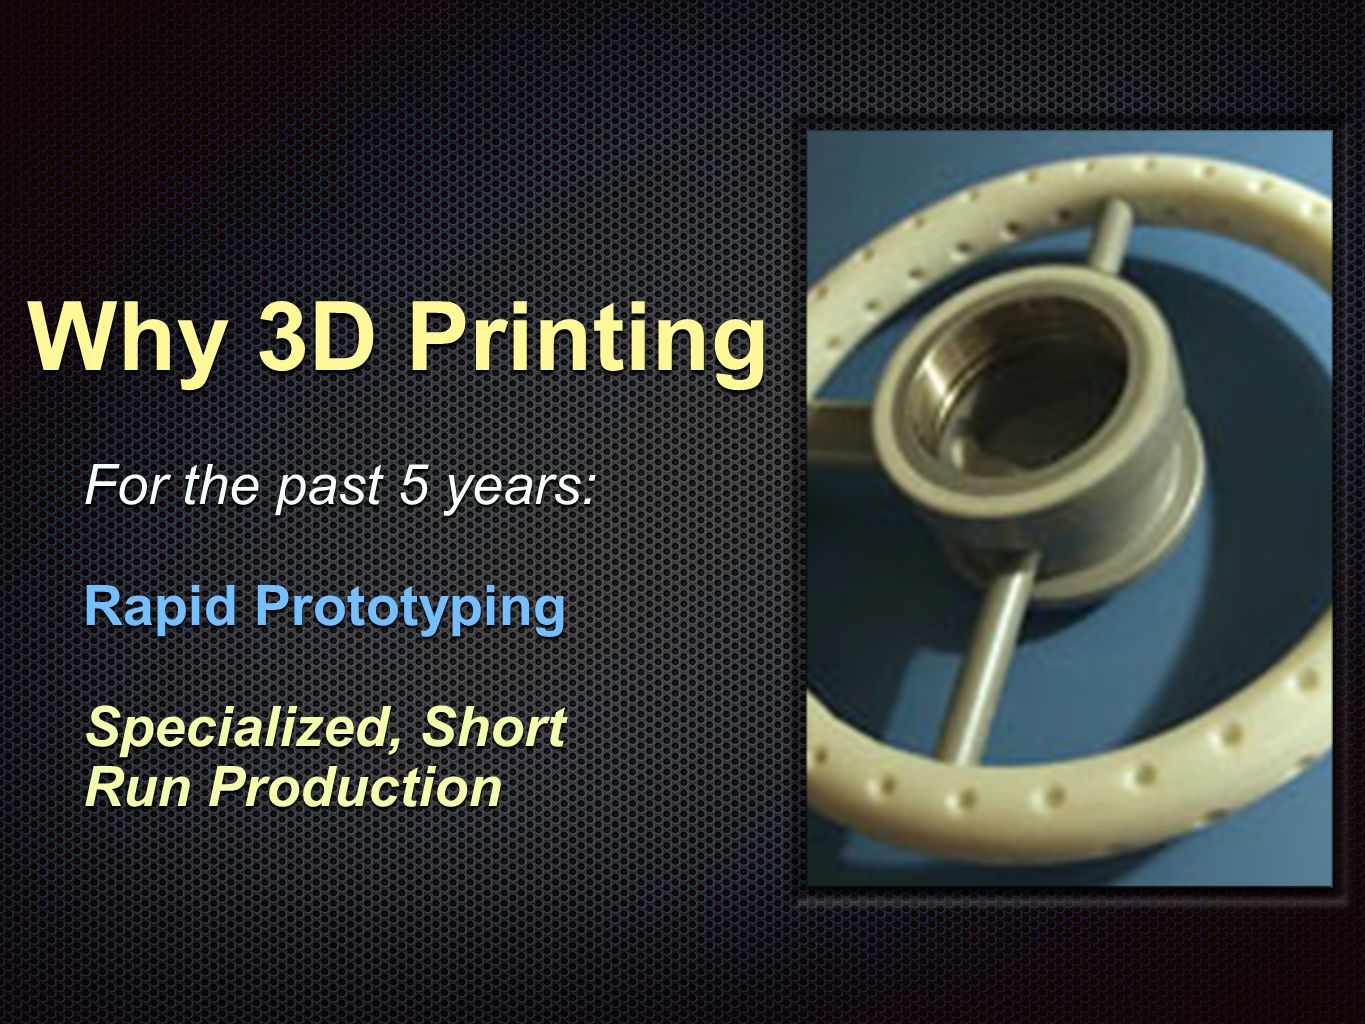 Correct Materials Make the Difference Using the right plastic materials enables desktop 3D printers to become highly useful machines for 1.Conceptual prototyping 2.Functional prototyping 3.Production of some parts 4.Production of jigs, fixtures and mold components